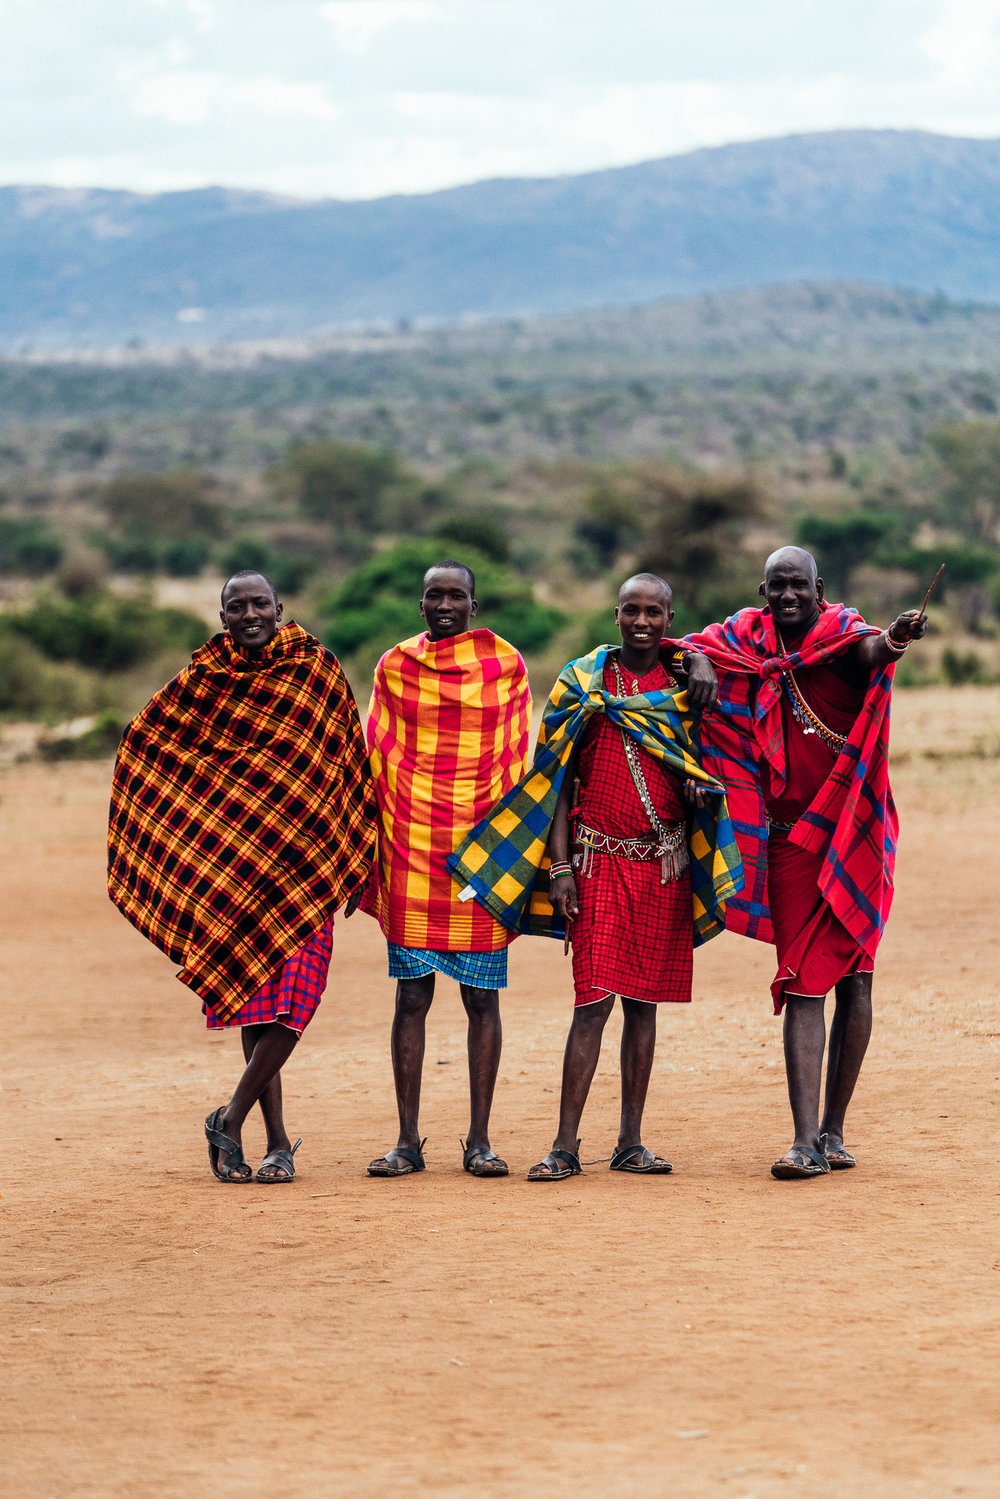 Maasai Guides at Cottars 1920s Safari Camp Ph. Dave Krugman